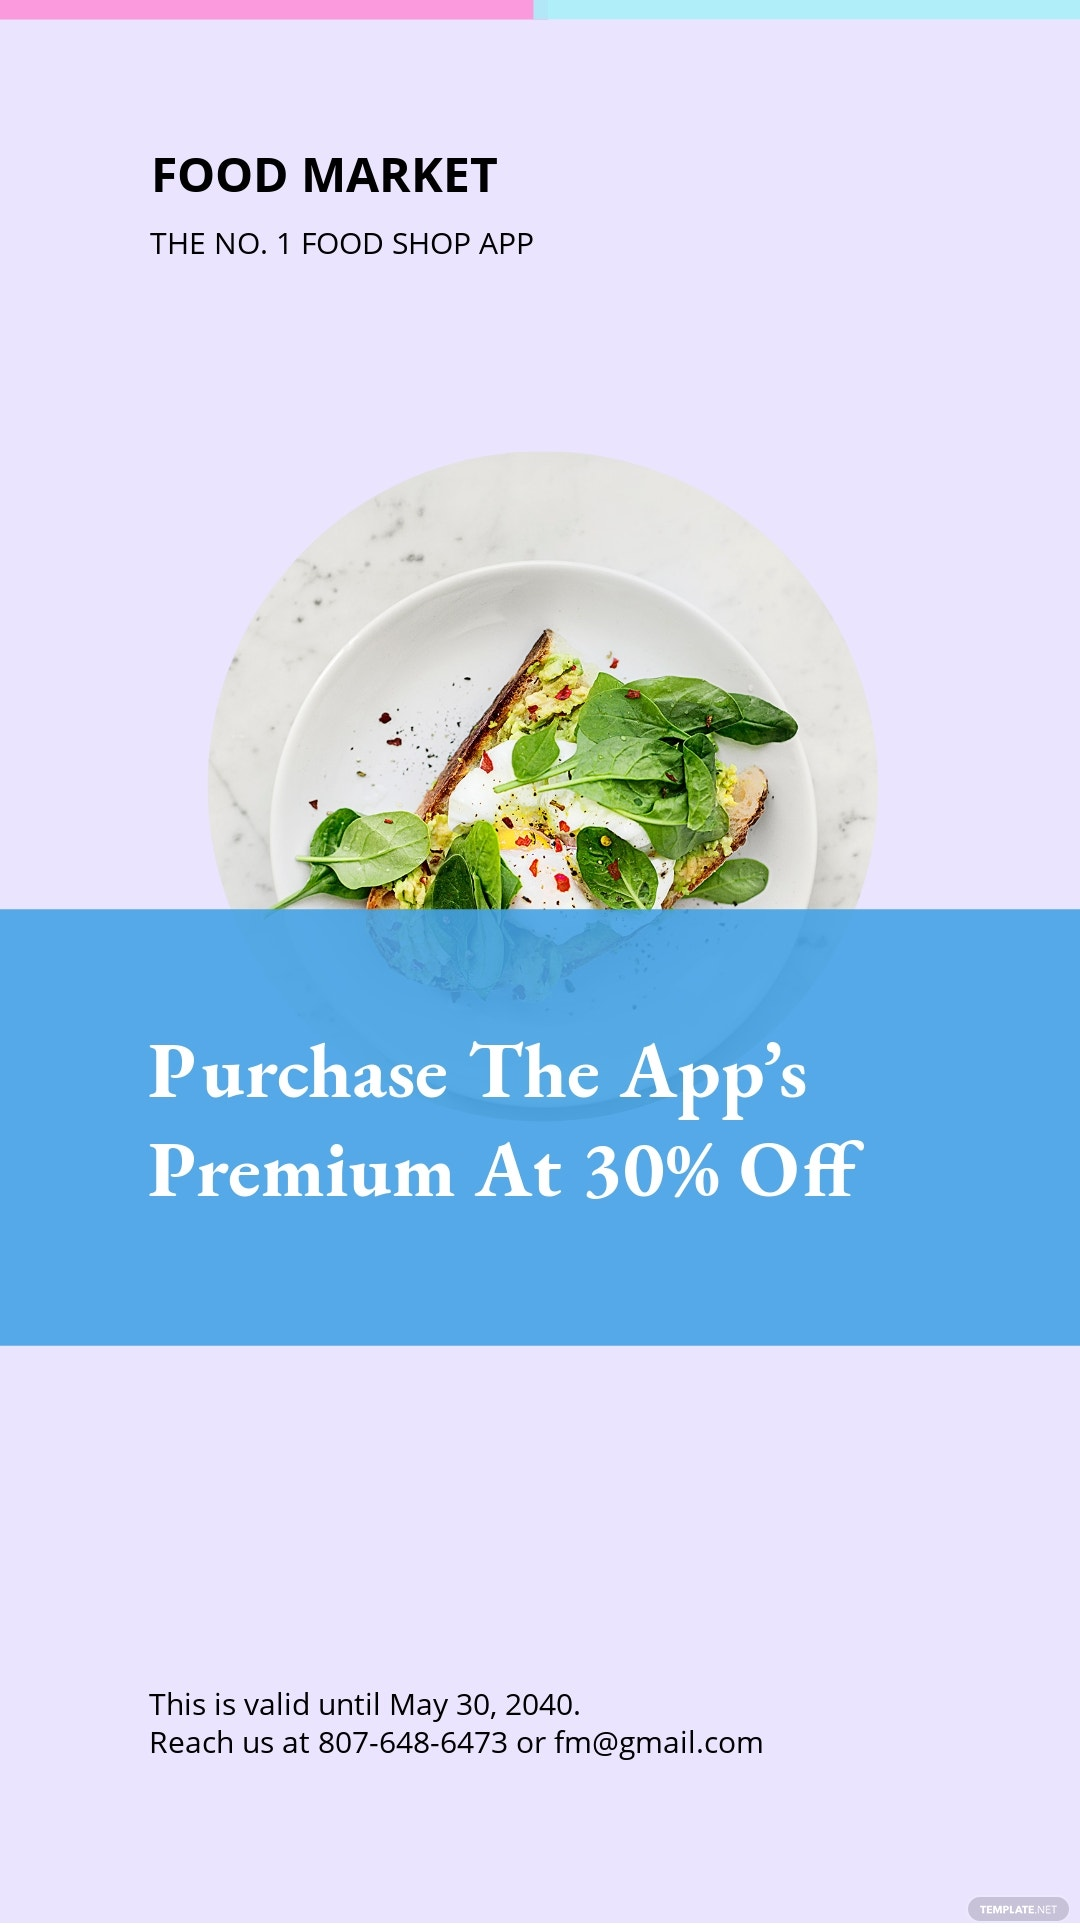 Free Food App Promotion Instagram Story Template.jpe